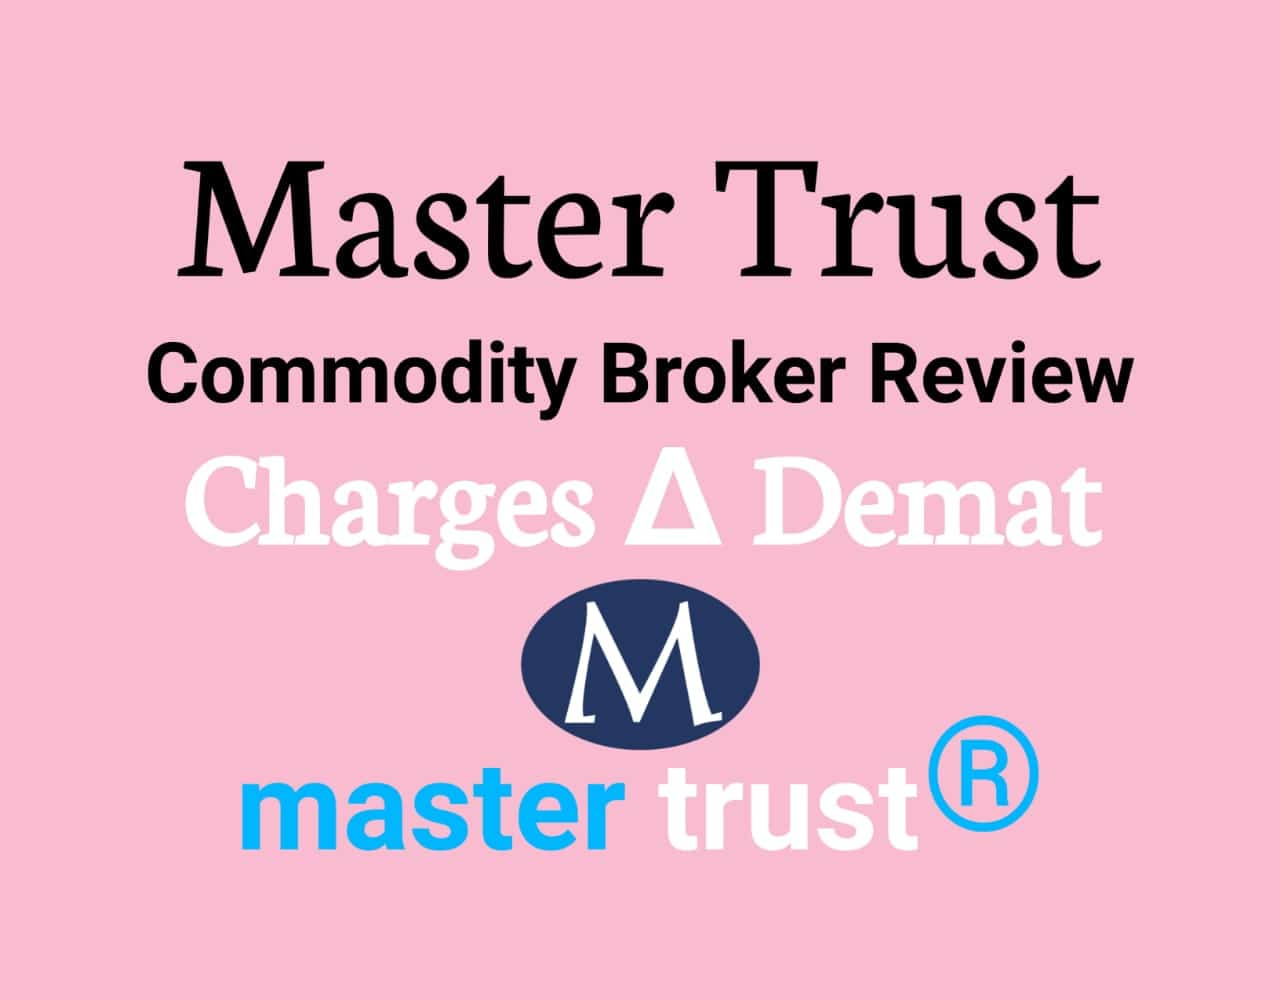 Master Trust broker Review